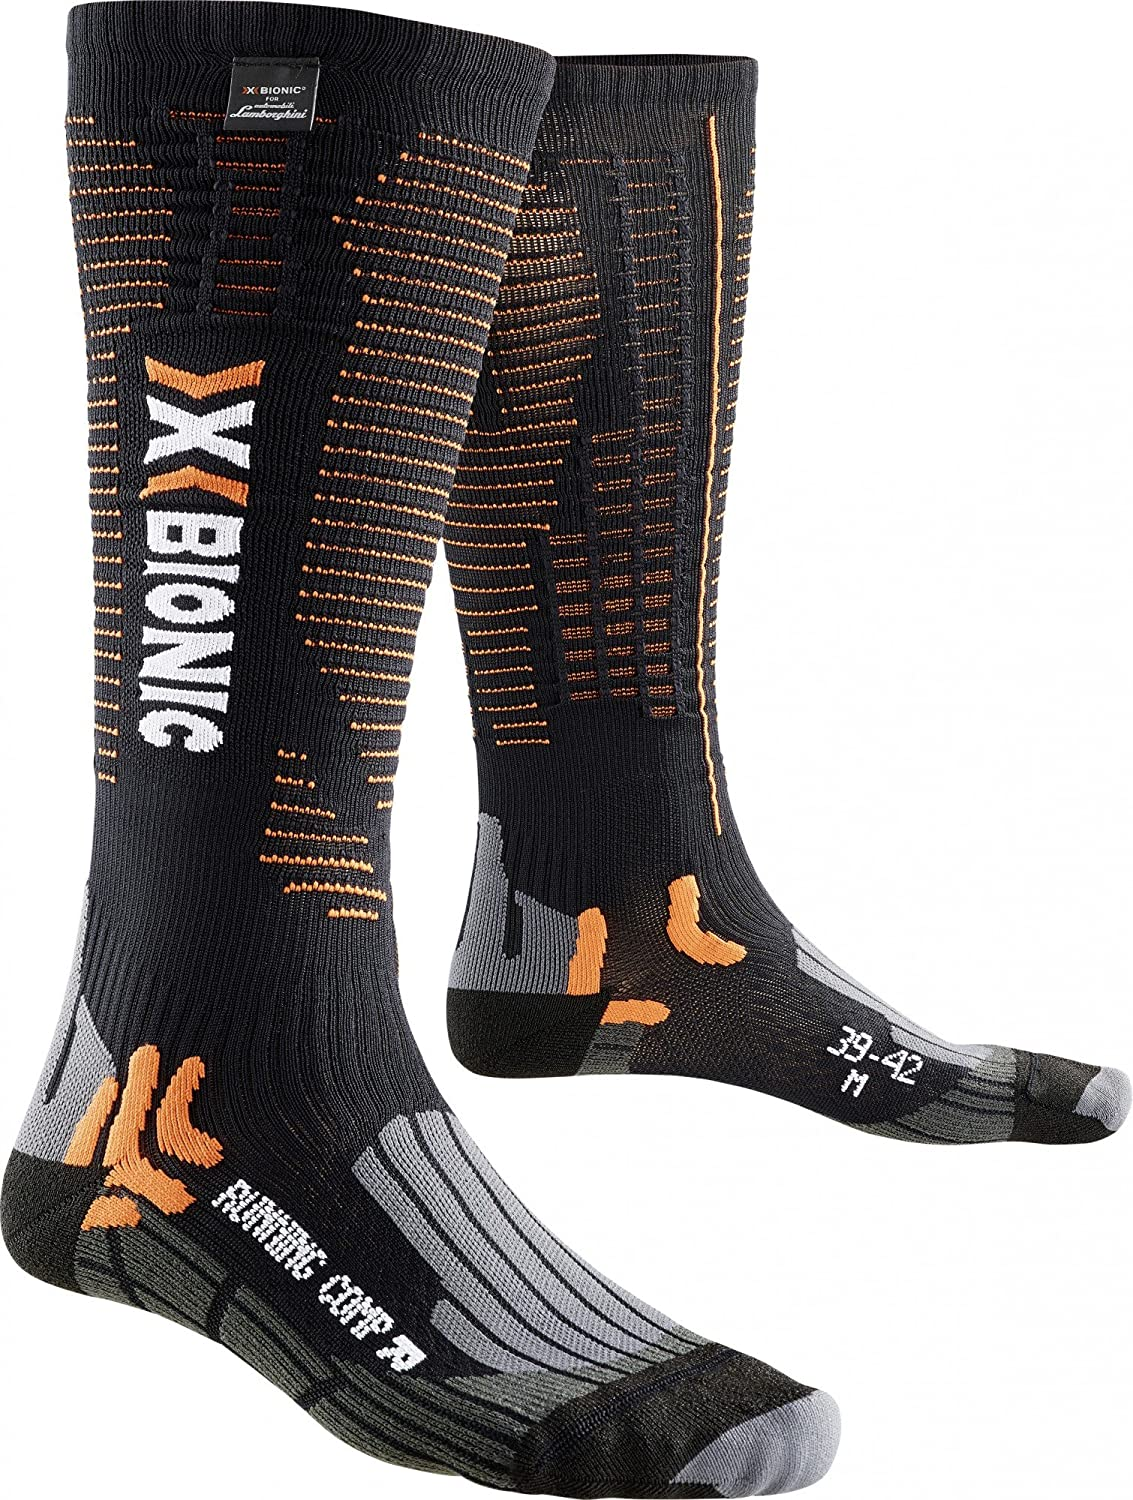 TALLA 39/42M. X-Bionic X-Socks Hombre Running Competition for Lamborghini Calcetines, Hombre, Running Competition For Lamborghini, Black/Orange